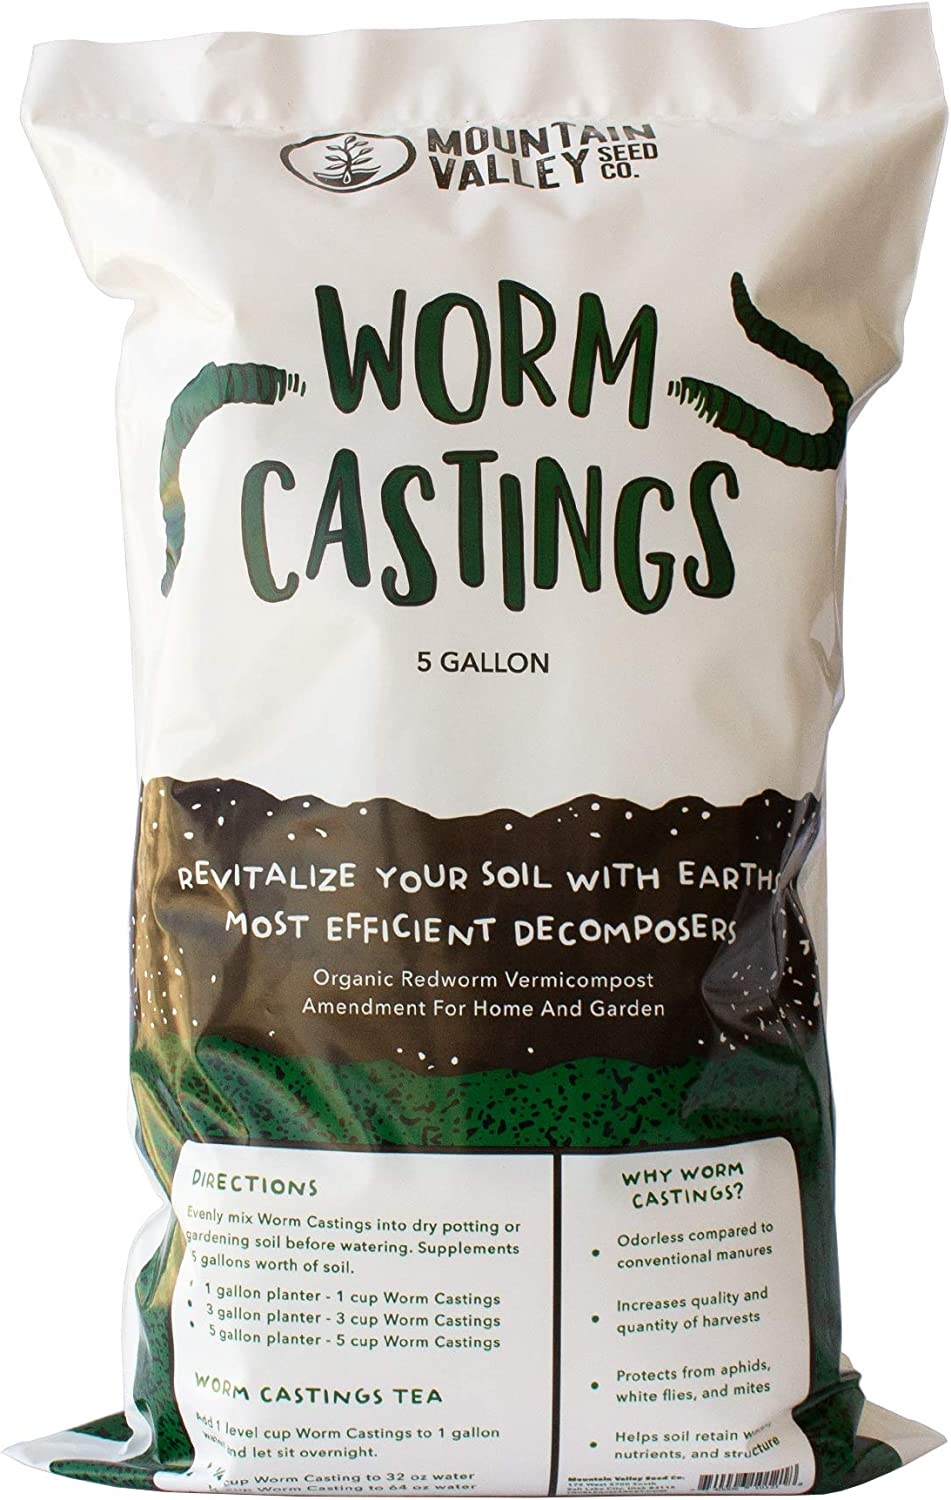 Earth Worm Castings – Organic Red Worm Compost Soil Amendment - 1 Cubic Foot ~45 Lbs - Approximately 7.5 Gallons - Organic Red Worm Vermiculture and Compost Home, Garden, Greenhouse, and Farm